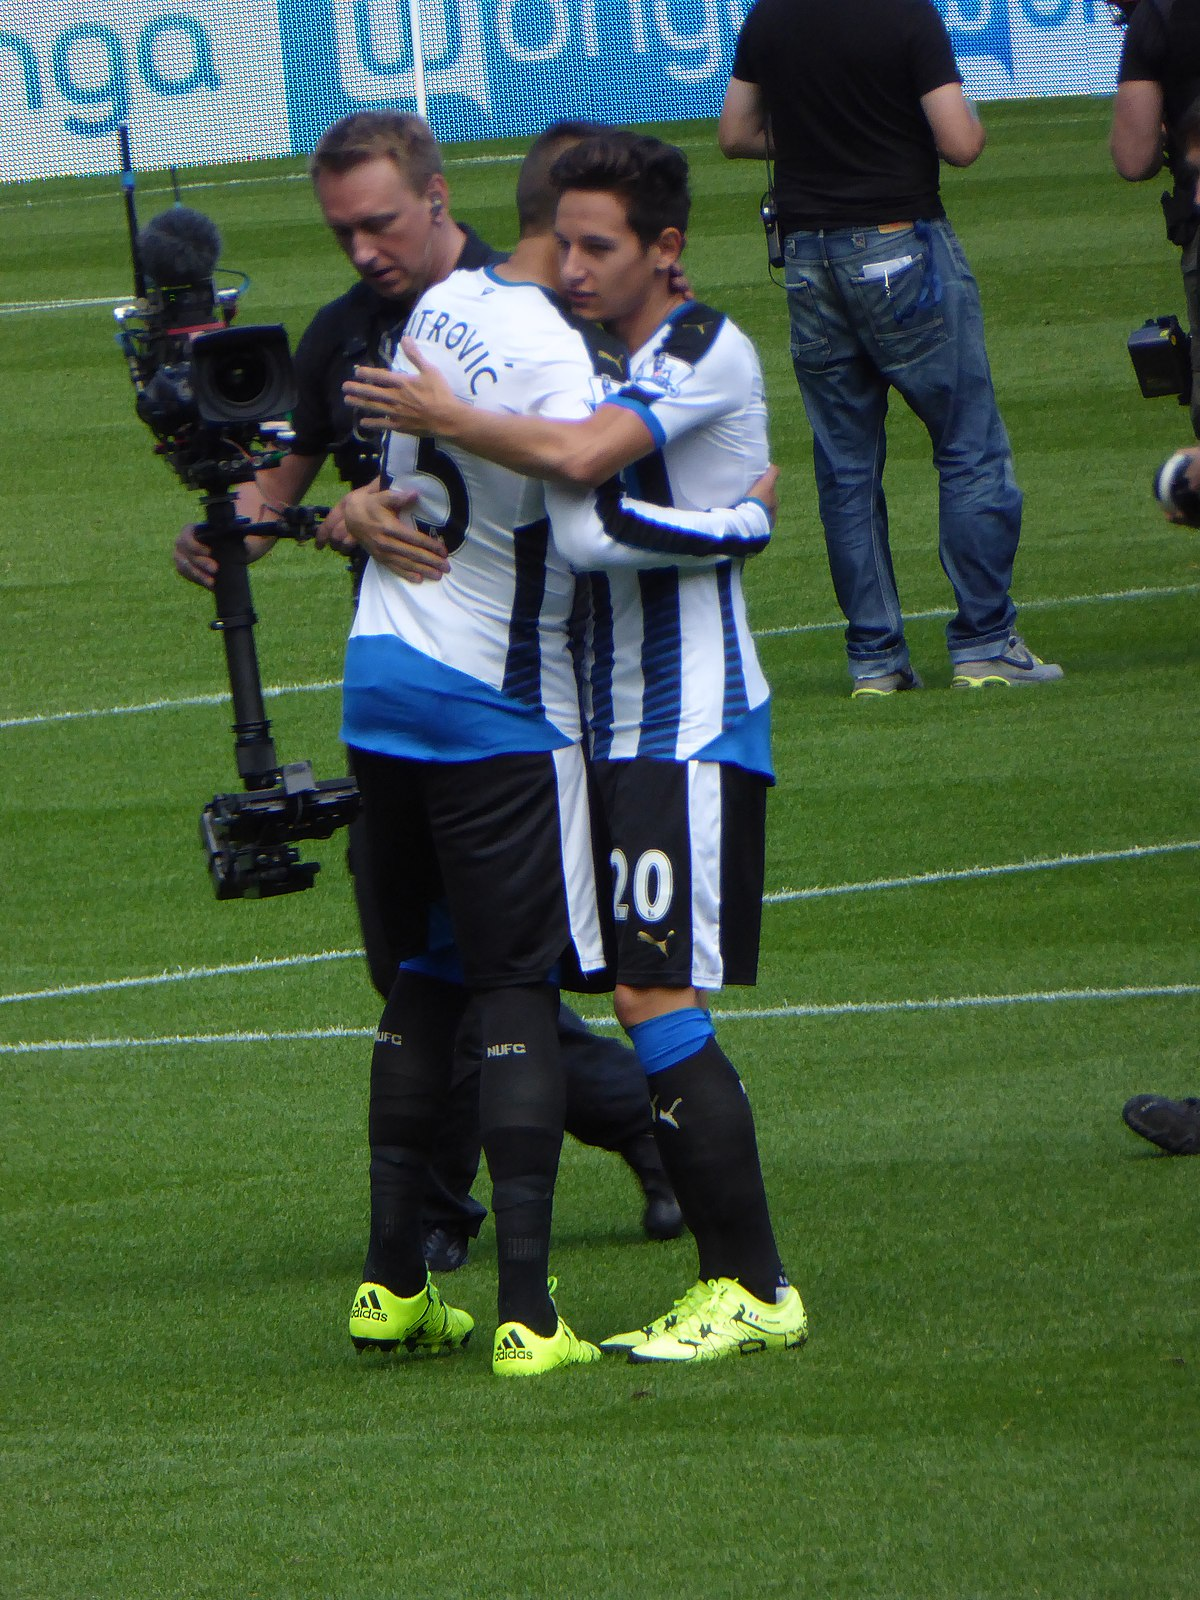 File:Newcastle United vs Arsenal, 29 August 2015 (08).JPG ...